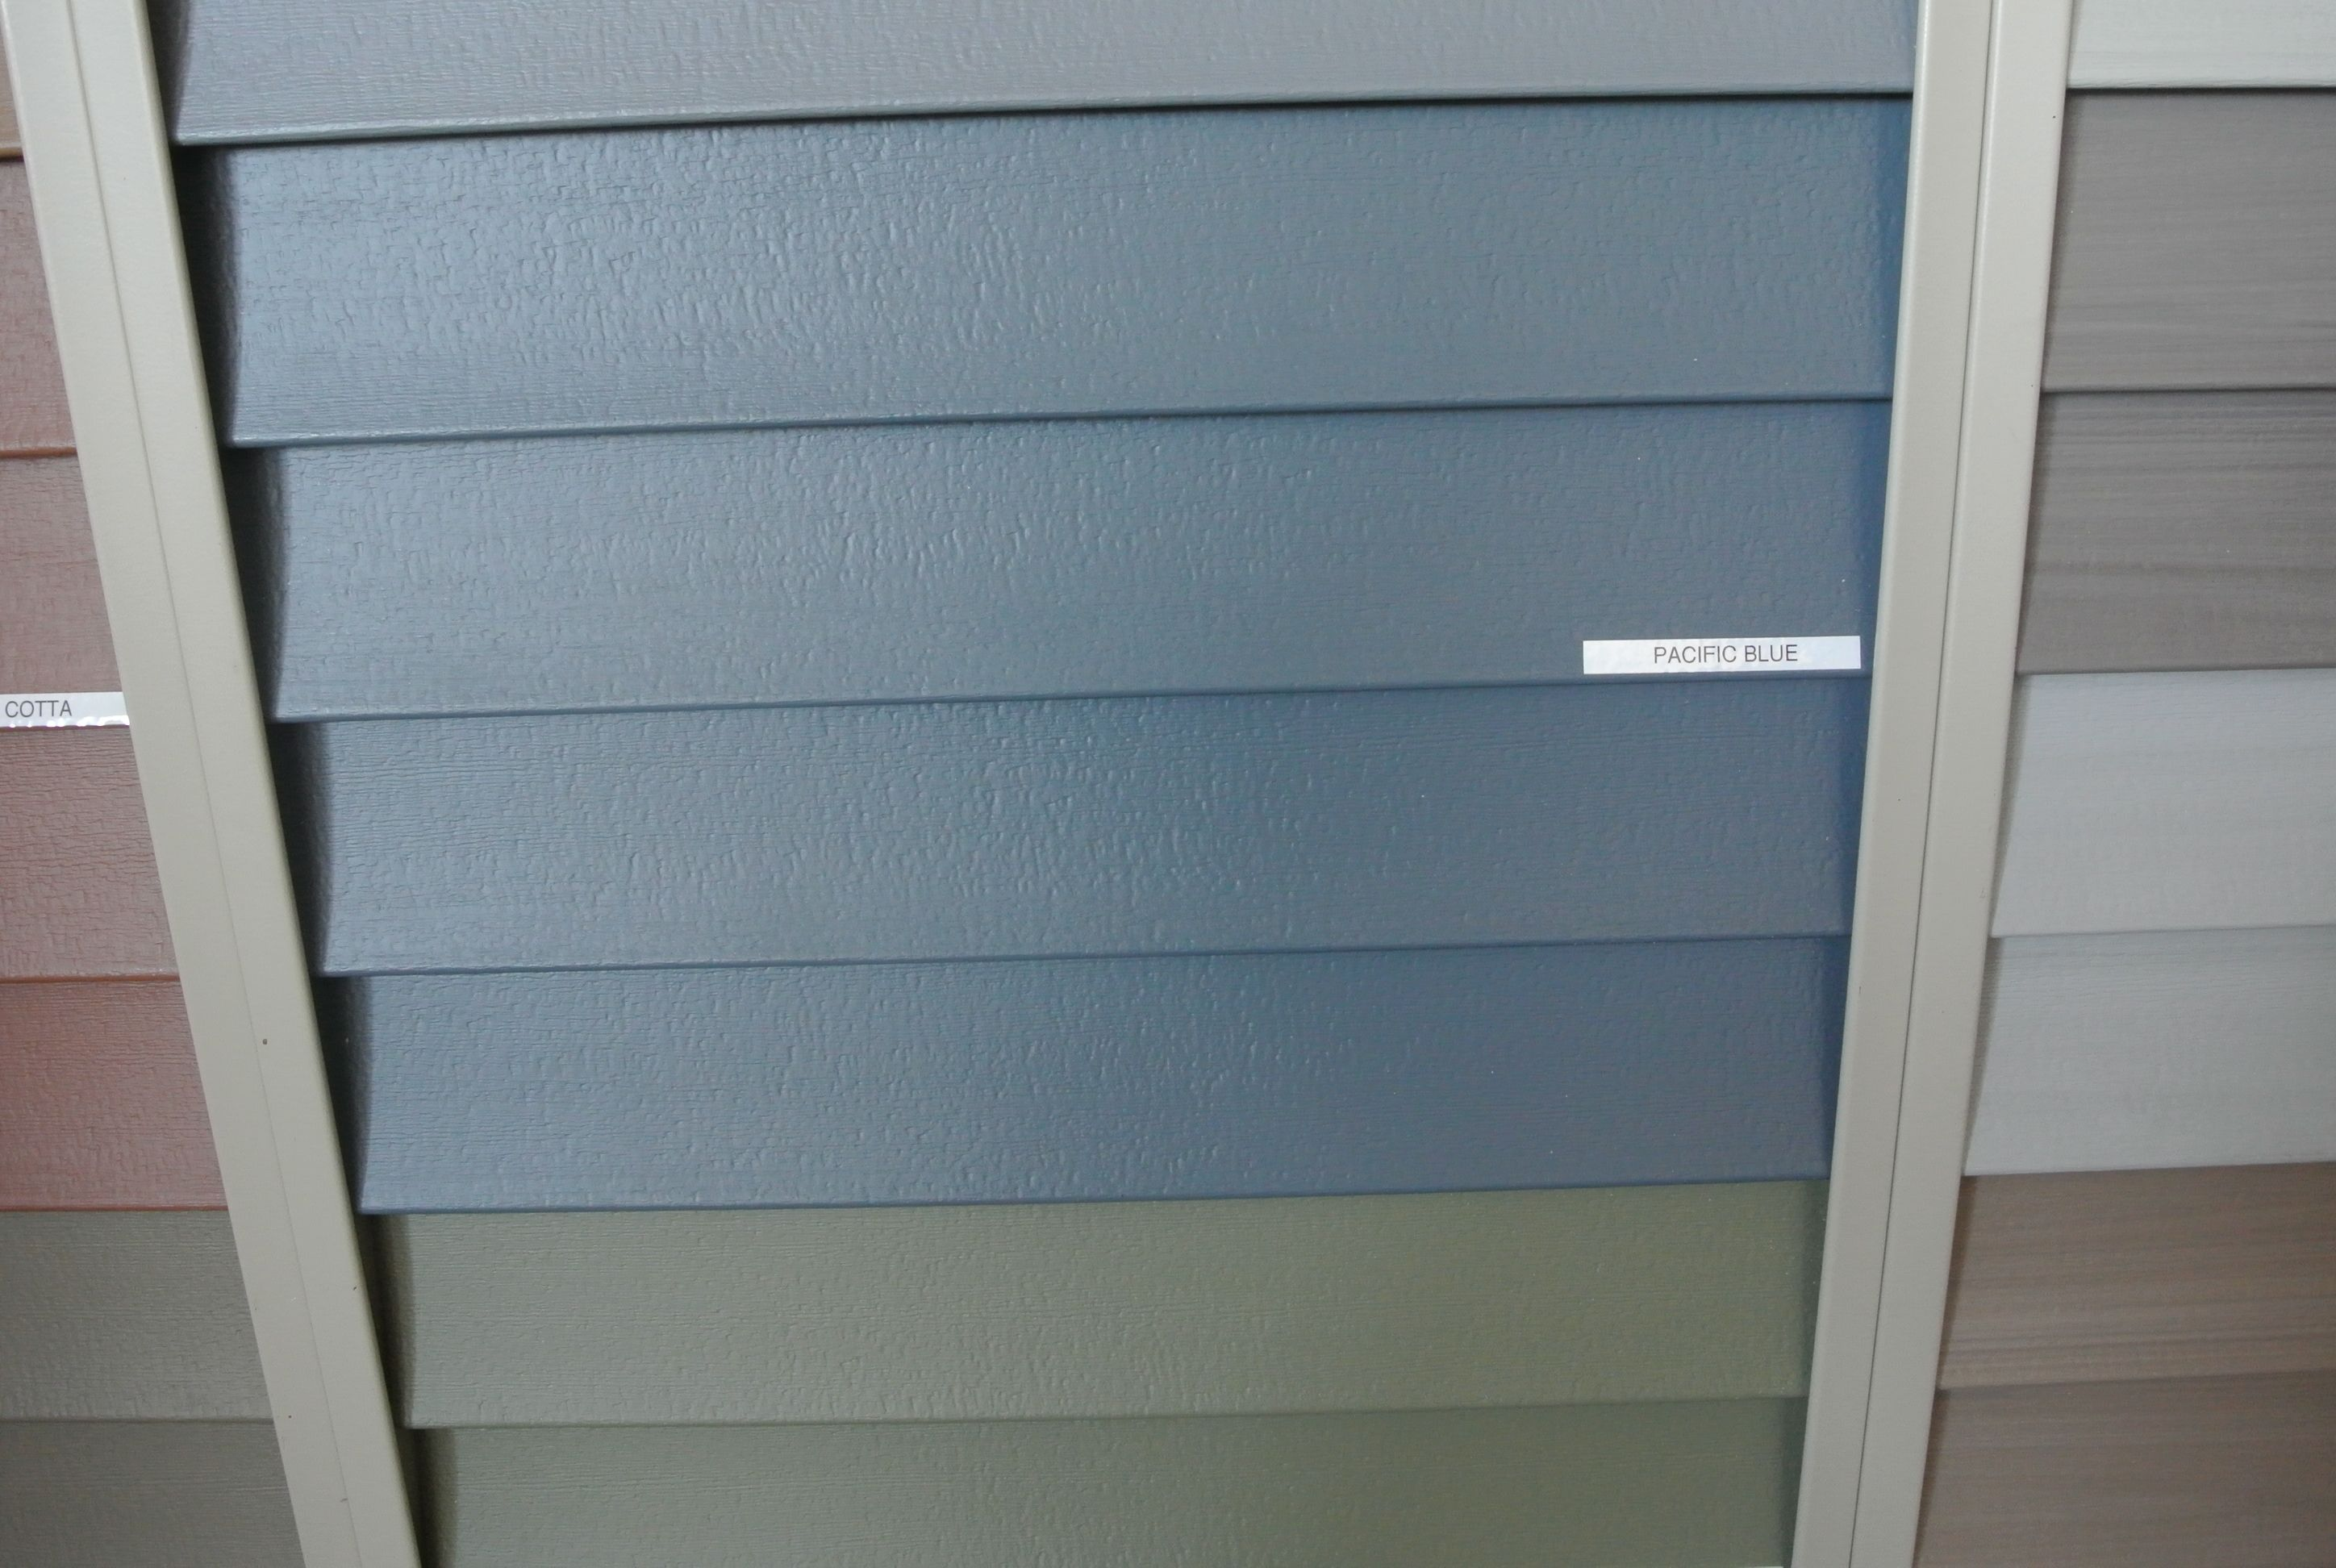 Pacific Blue Vinyl Siding By Certainteed It Has A Bit Of Slight Green Tint In Real Life But When You See The Blue Vinyl Siding Blue Siding Vinyl Siding Colors